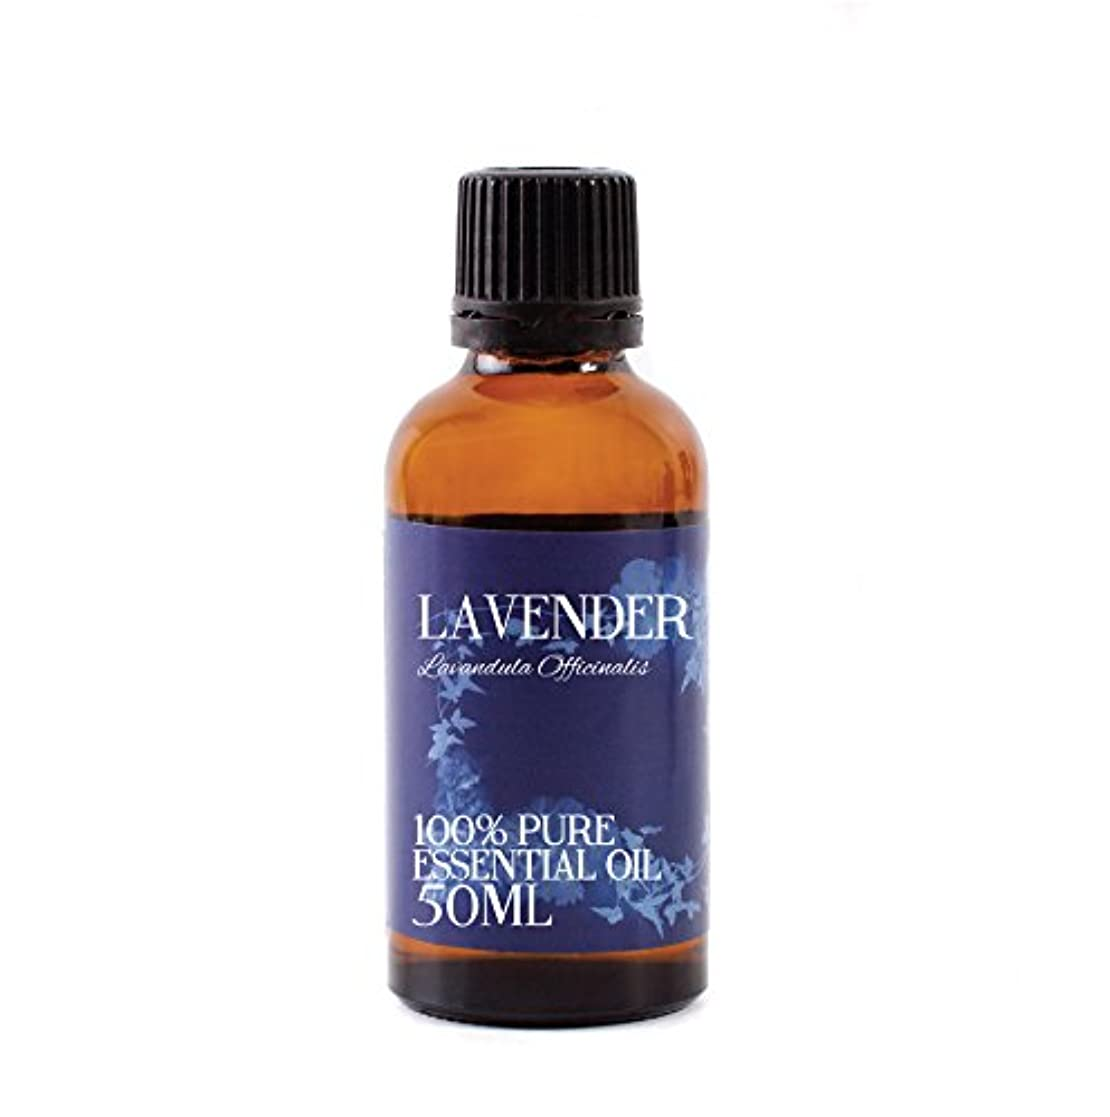 整理する提供こどもセンターMystic Moments | Lavender Essential Oil - 50ml - 100% Pure